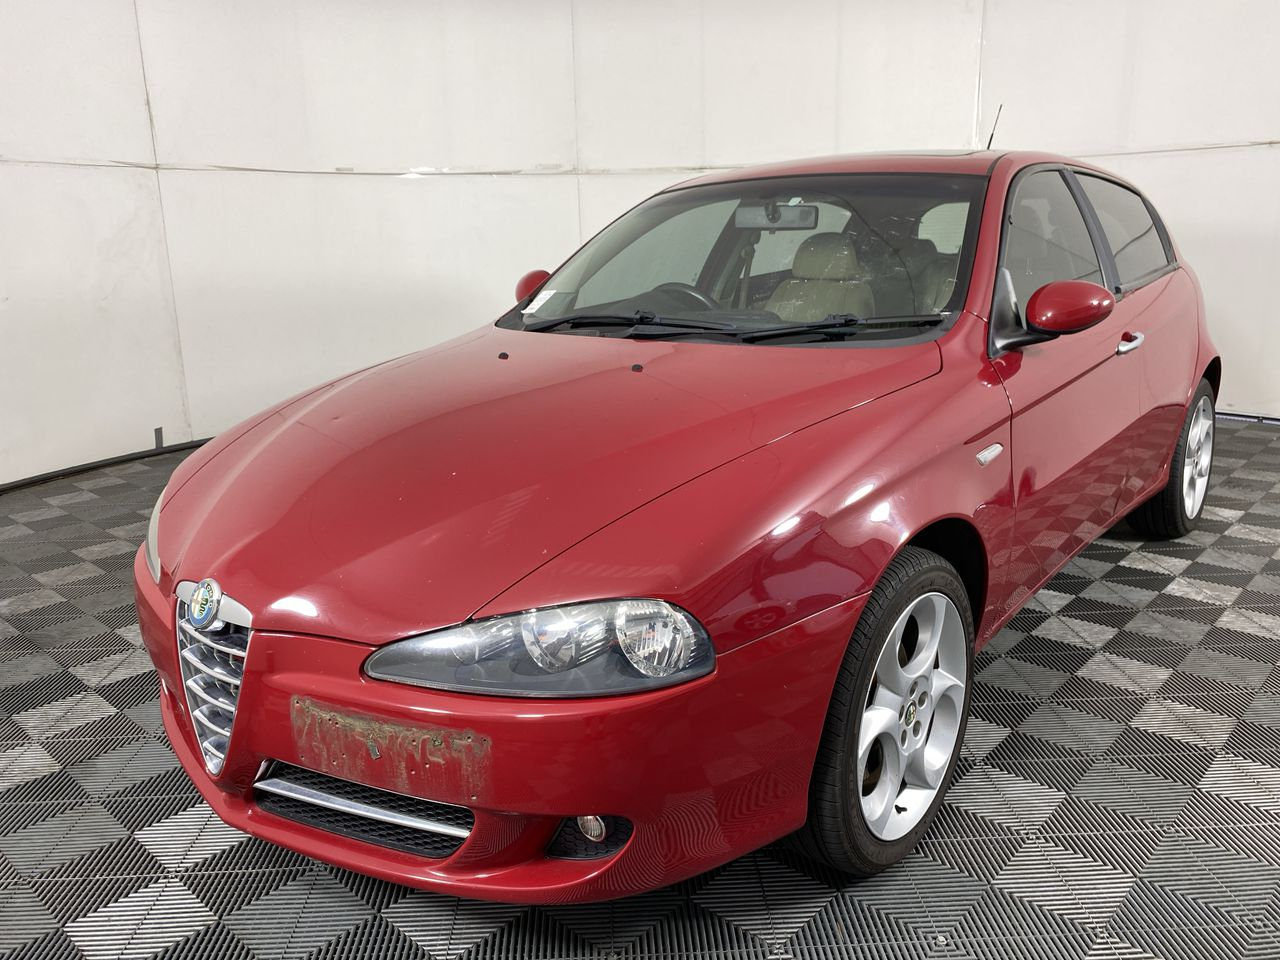 2007 Alfa Romeo 147 2.0 Twin Spark Manual Hatchback